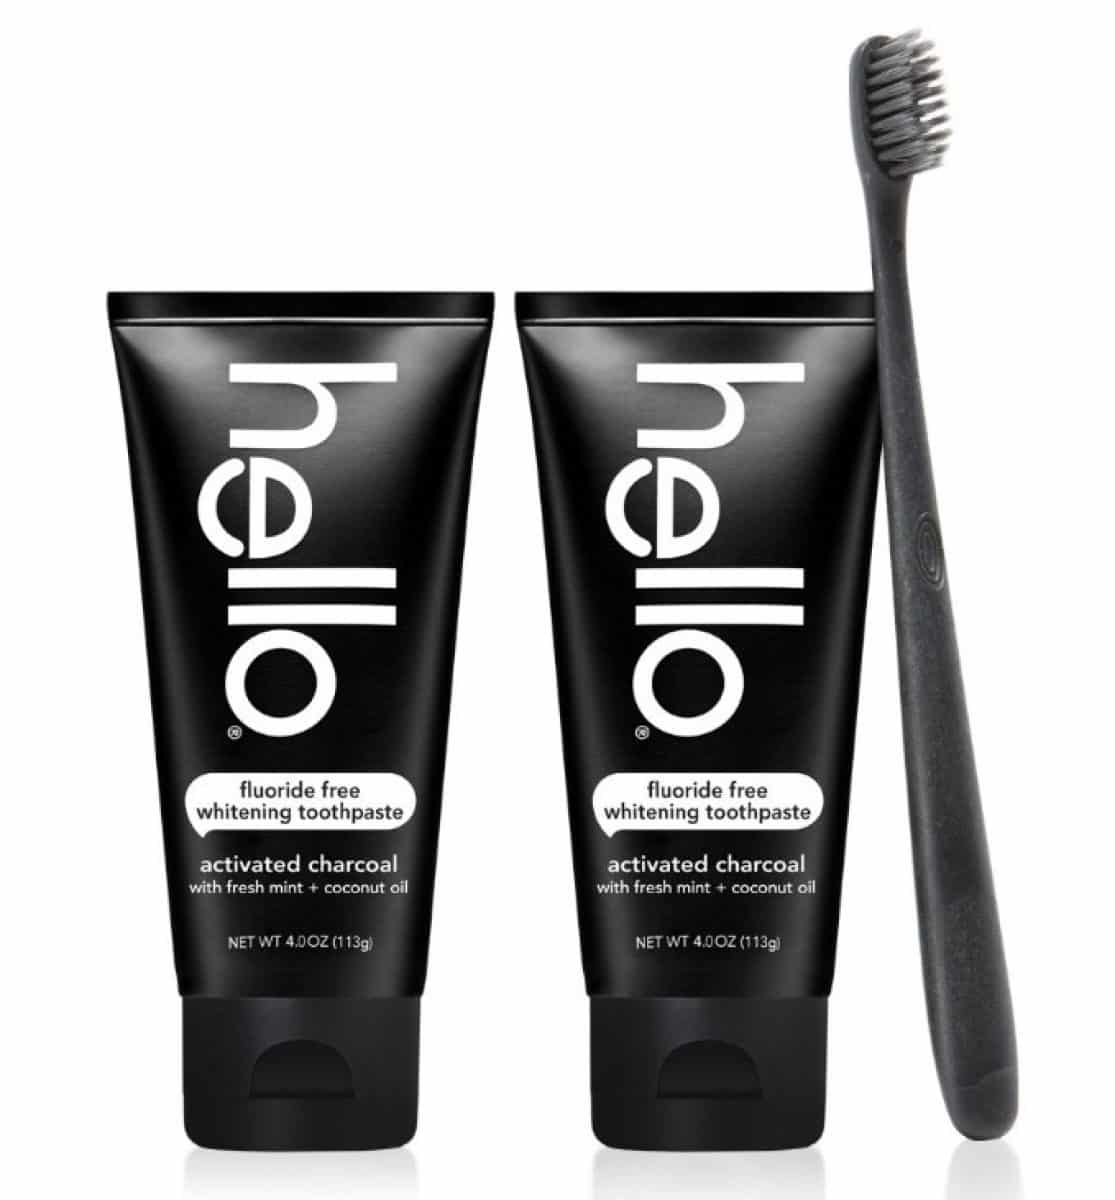 2 Pc Hello Activated Charcoal Teeth Whitening Toothpaste Pack